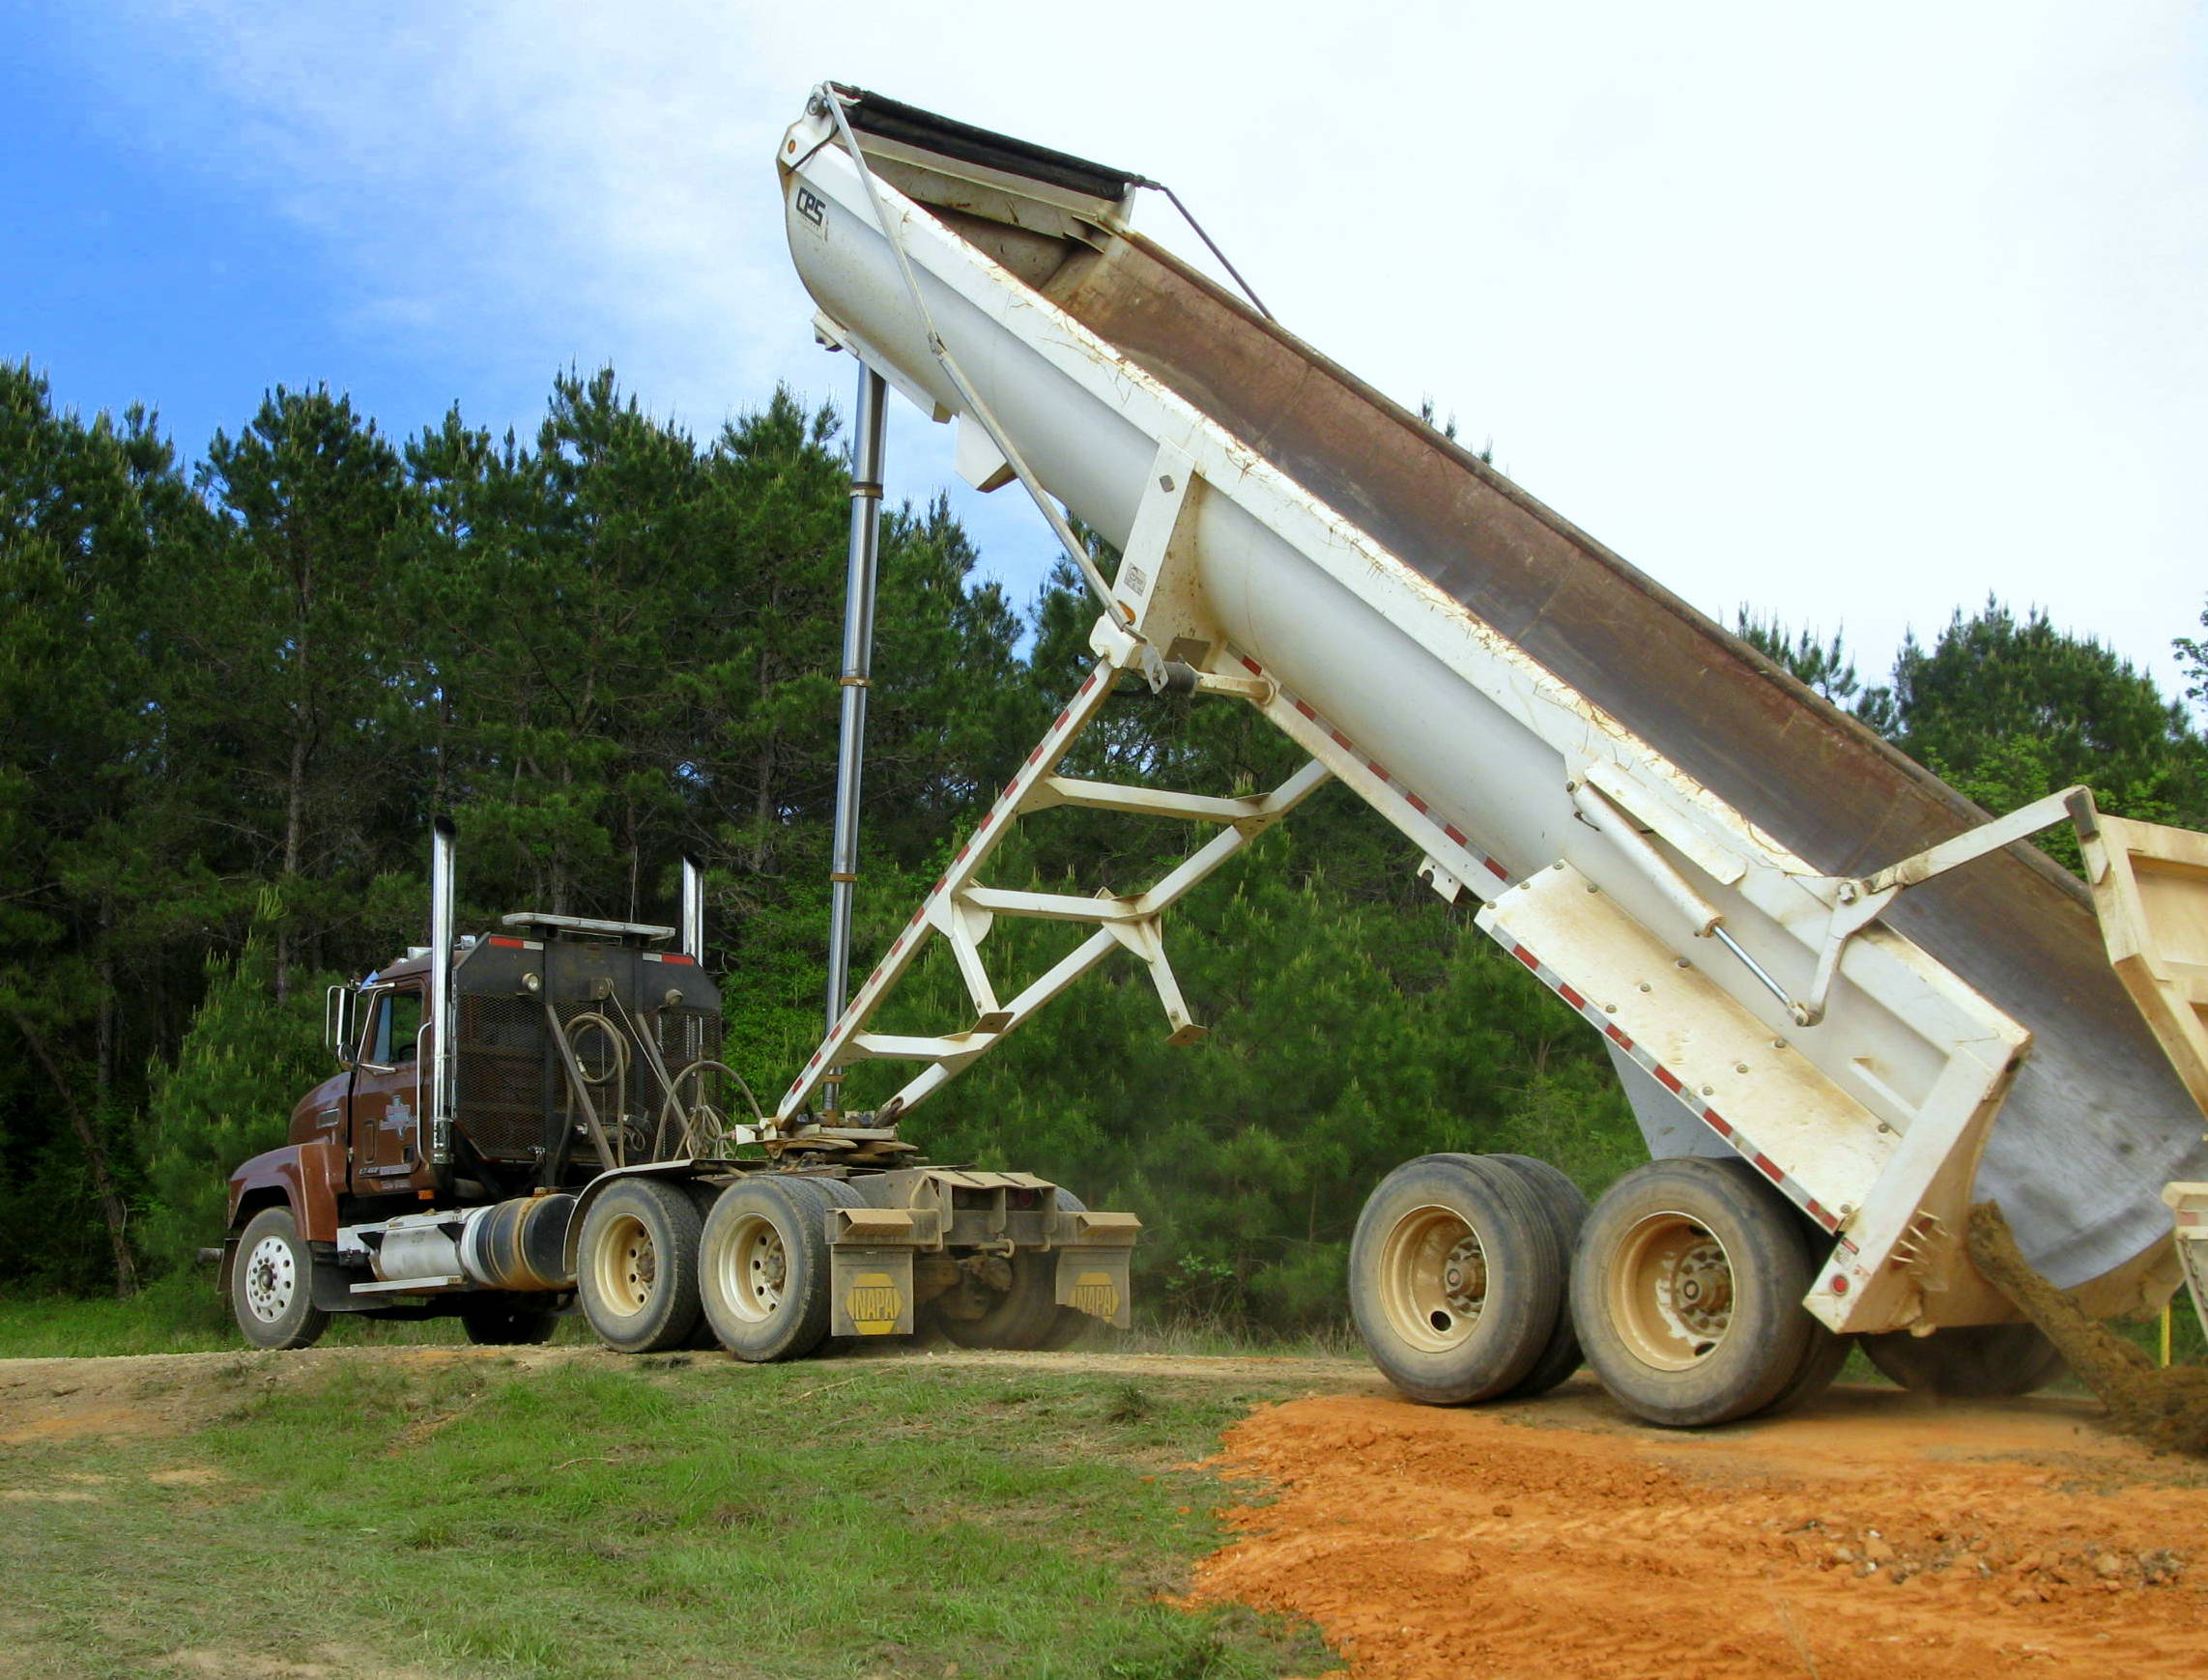 Large equipment for big jobs